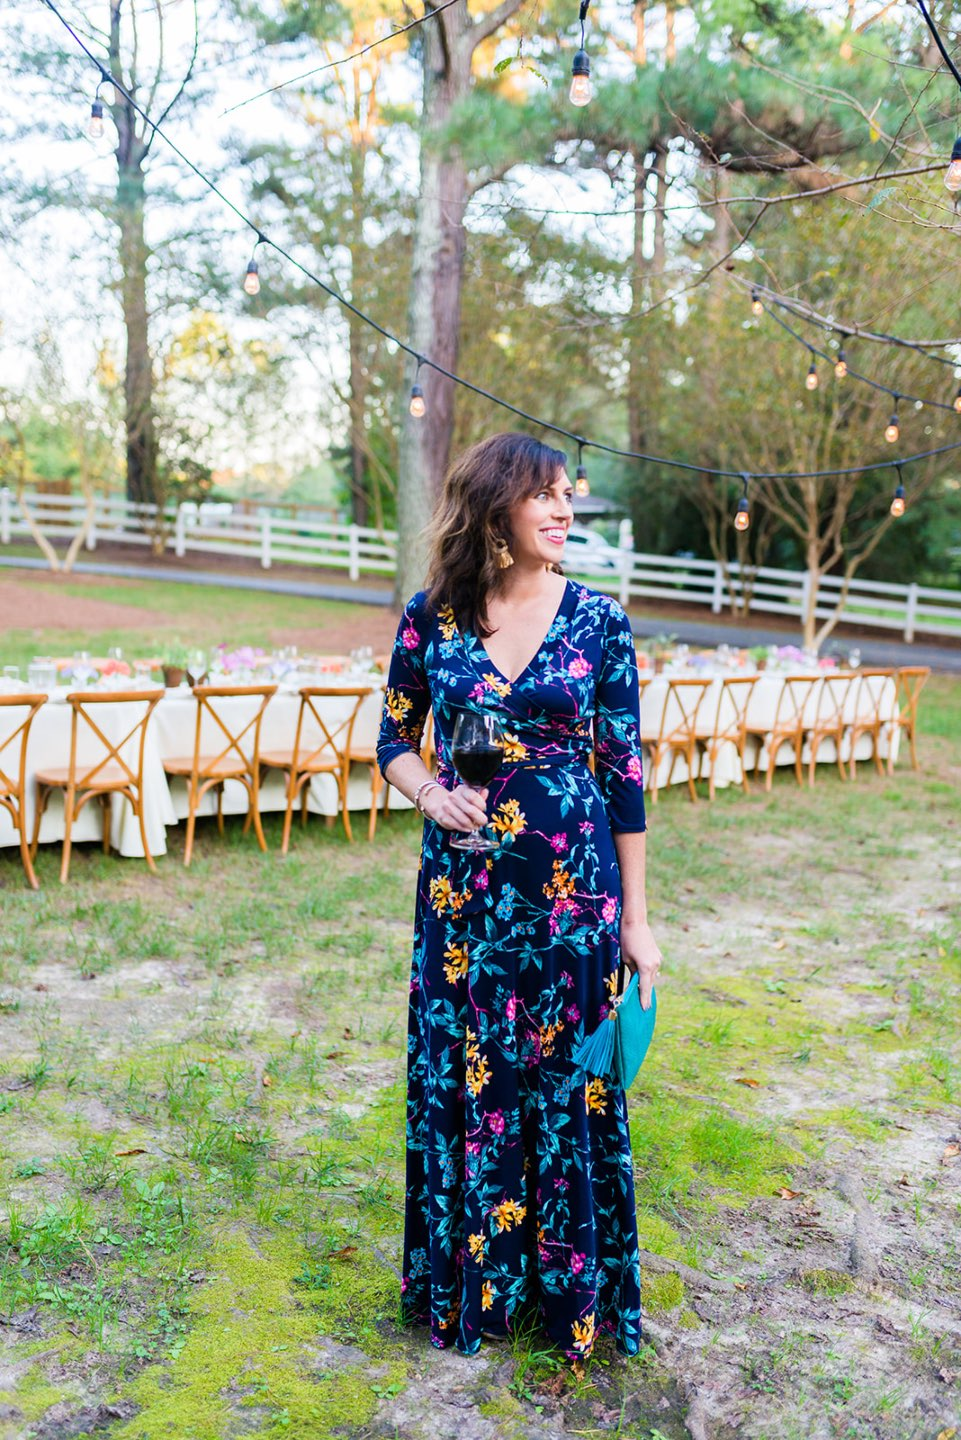 Style Guide: What to Wear in the Fall When It's Warm - I'm Fixin' To - @imfixintoblog